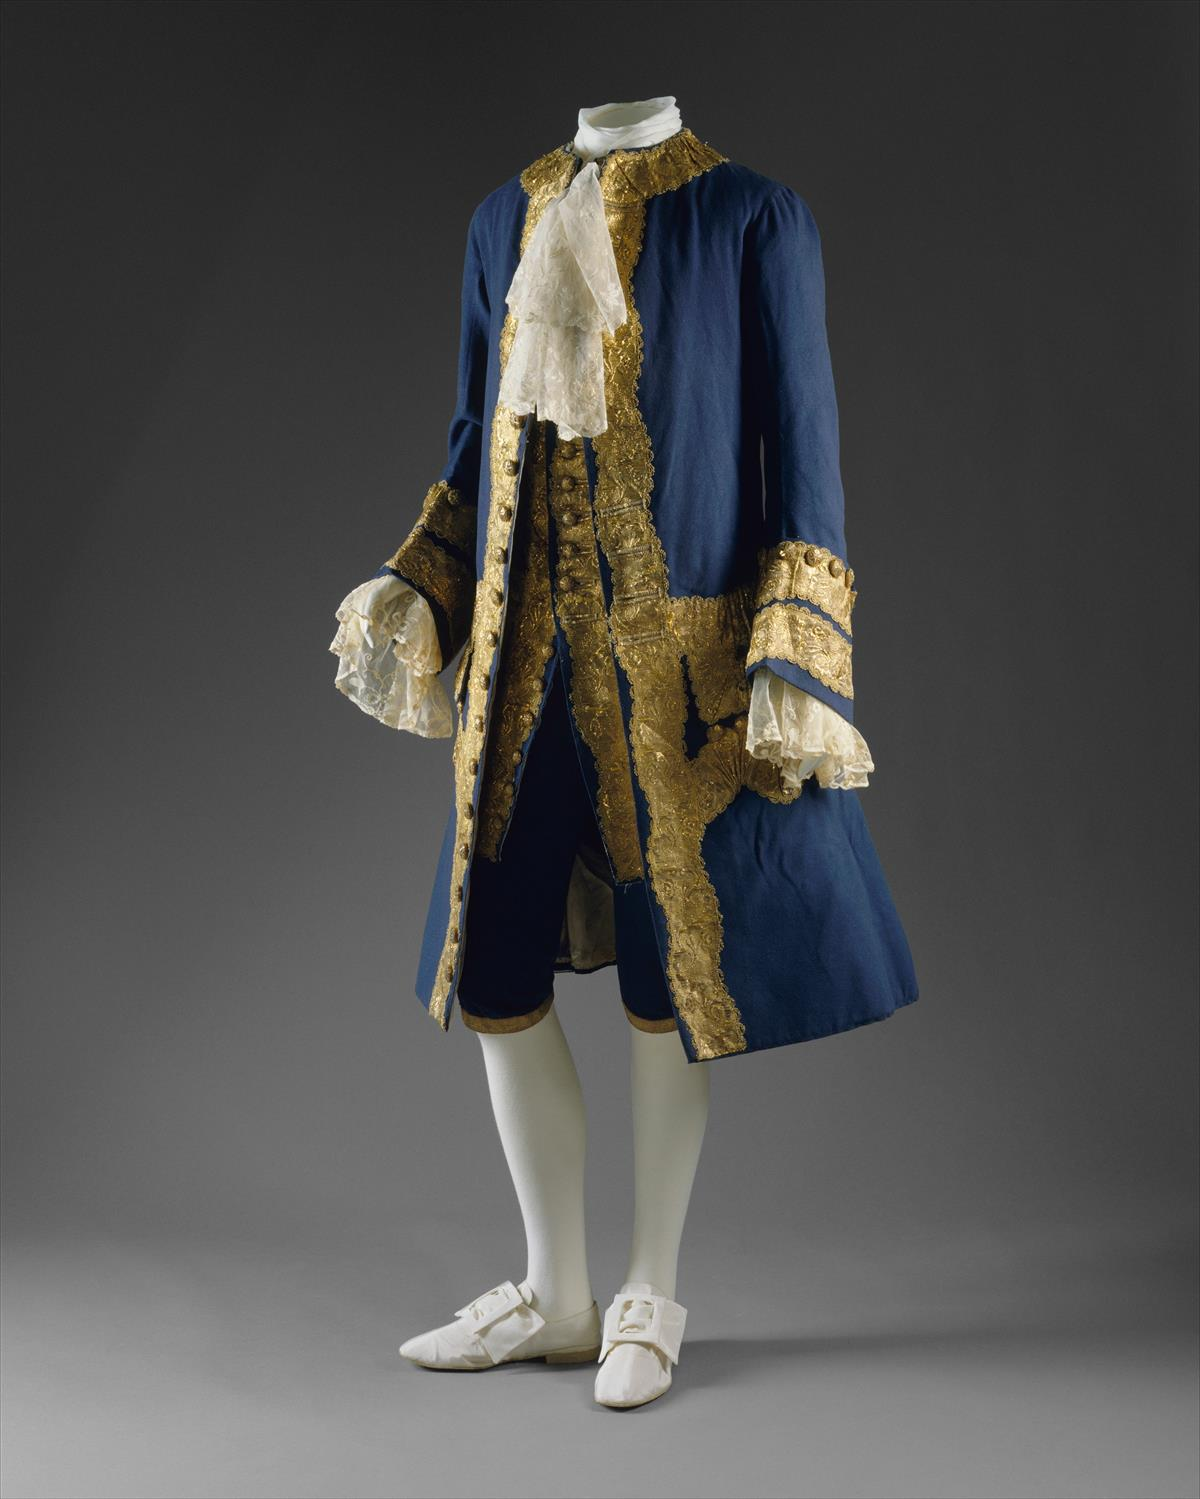 1760. British Suit. Wool, gilt metal. metmuseum